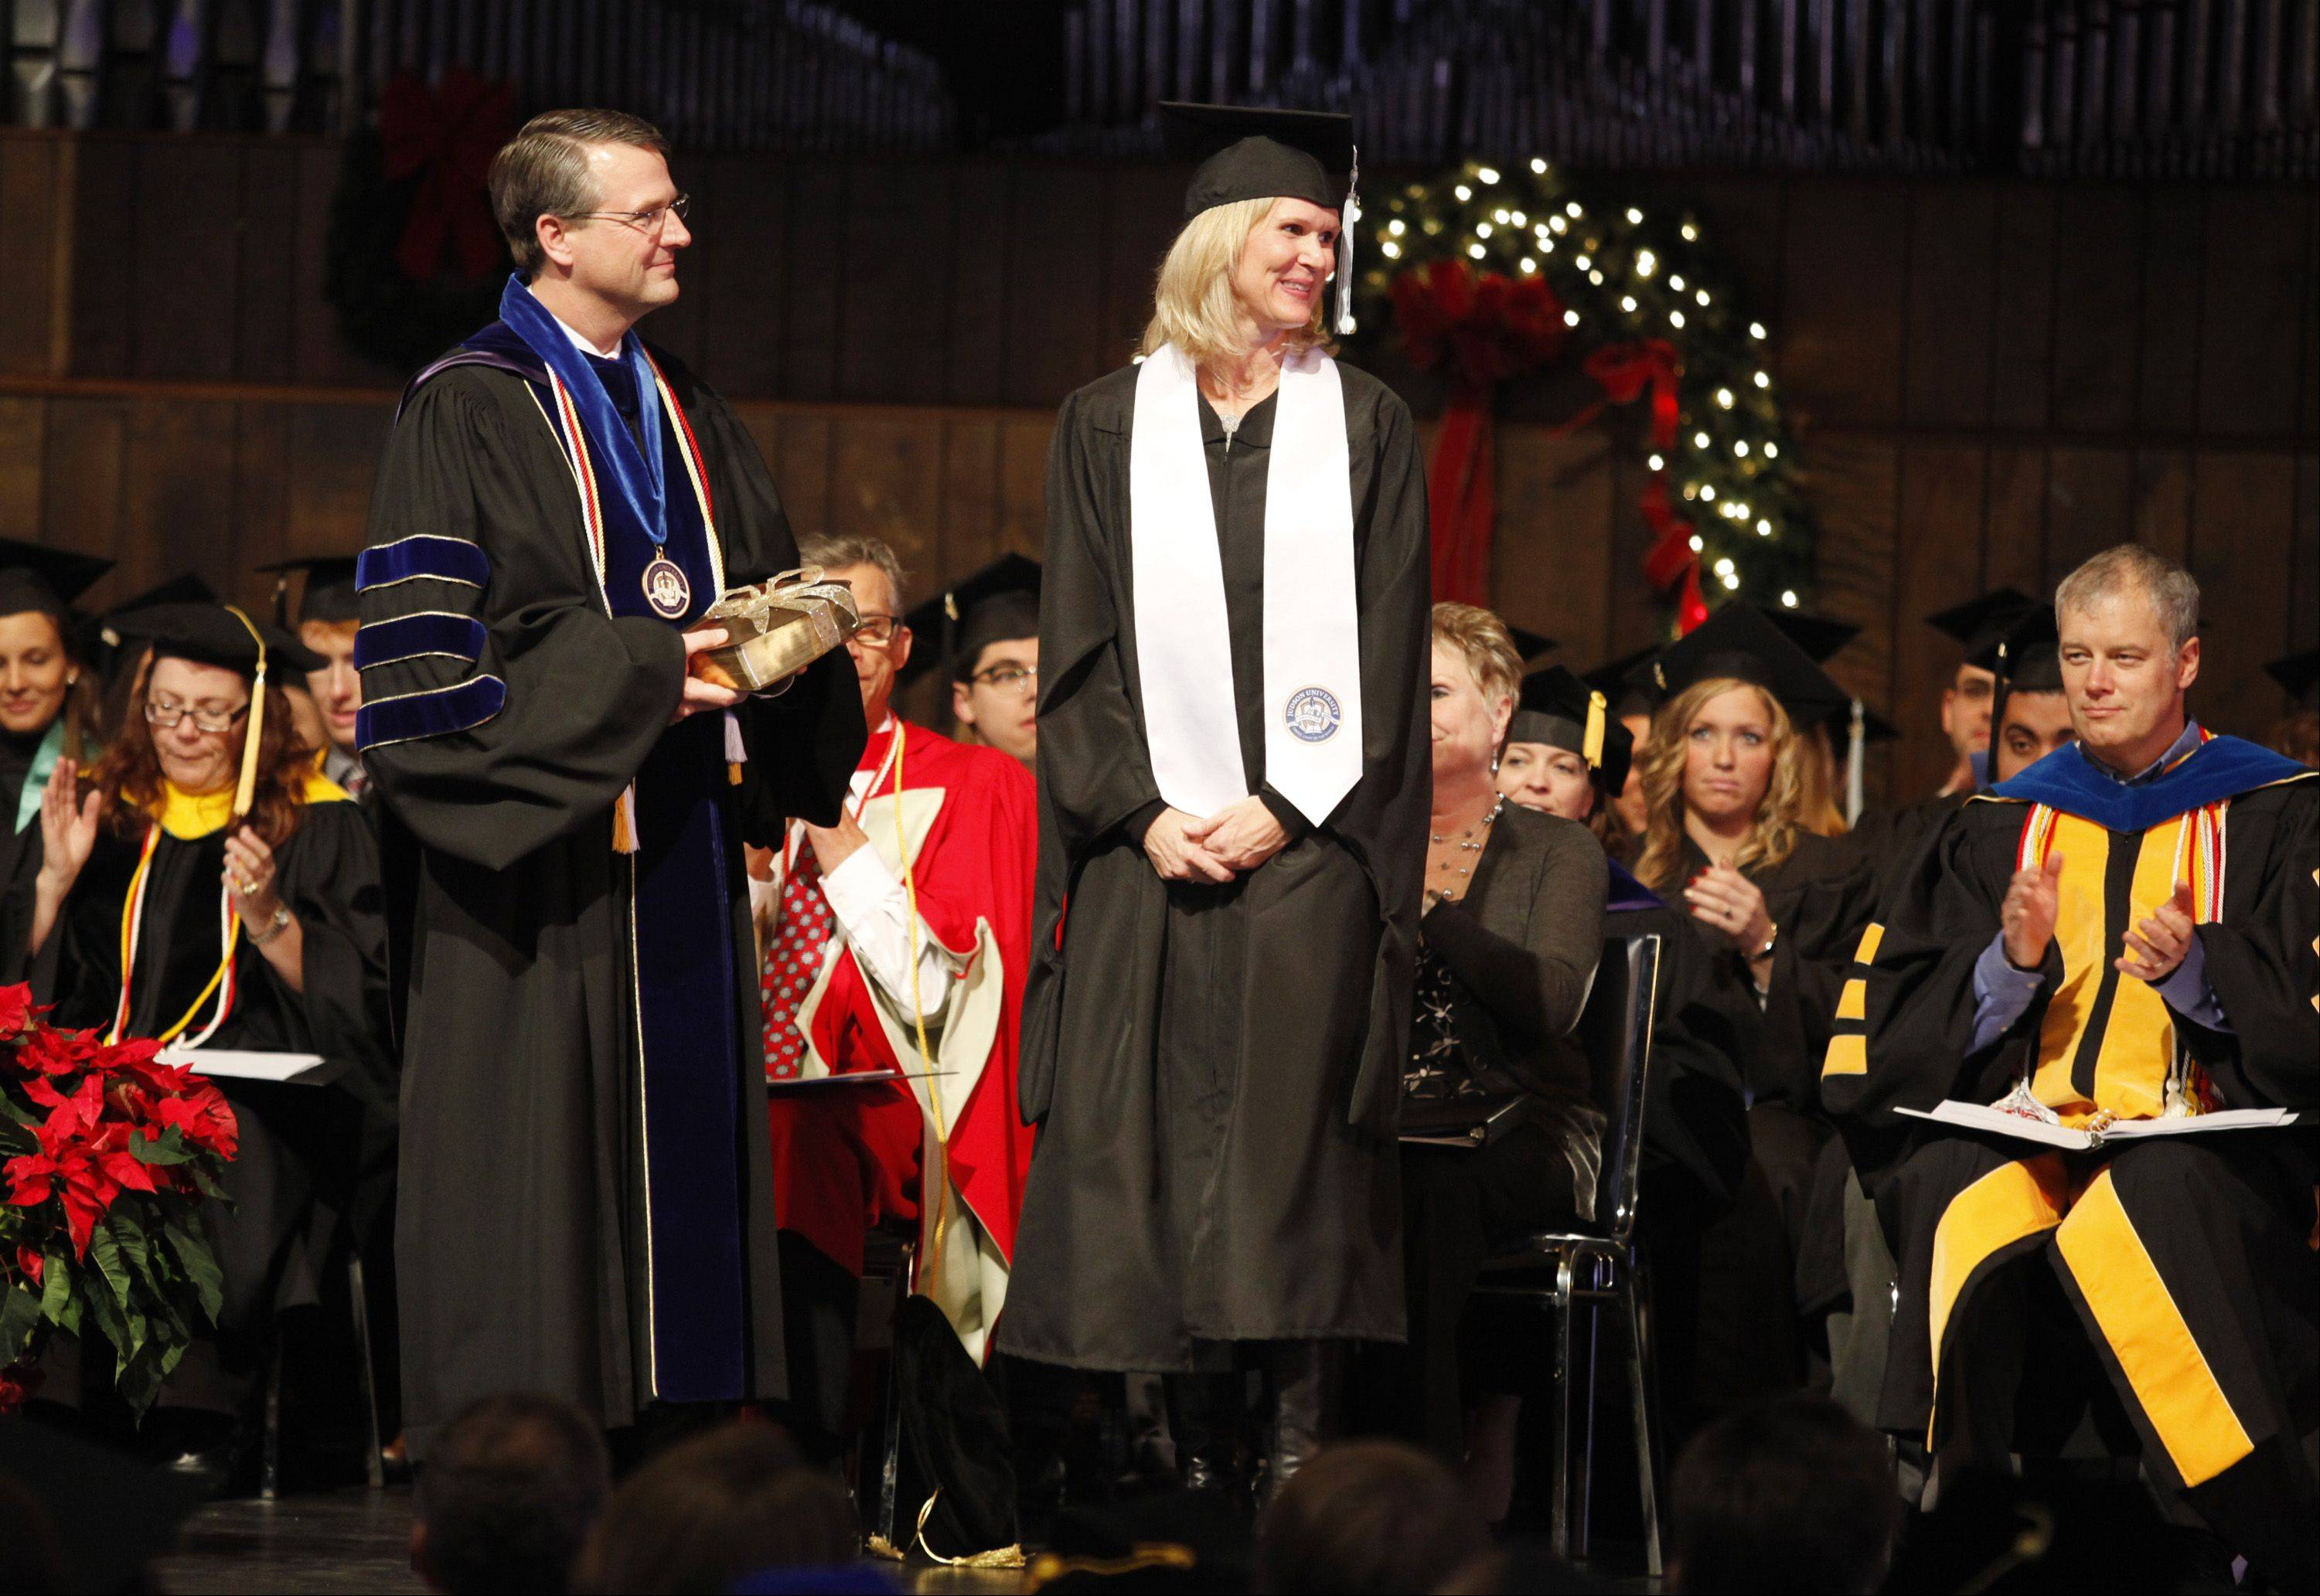 Judson University President Gene Crume, left, listens as accolades are read for Road to Damascus Award winner Kirsten Andler of Cary during a commencement ceremony Saturday at Judson University in Elgin. Andler received her Master of Education in Literacy degree.